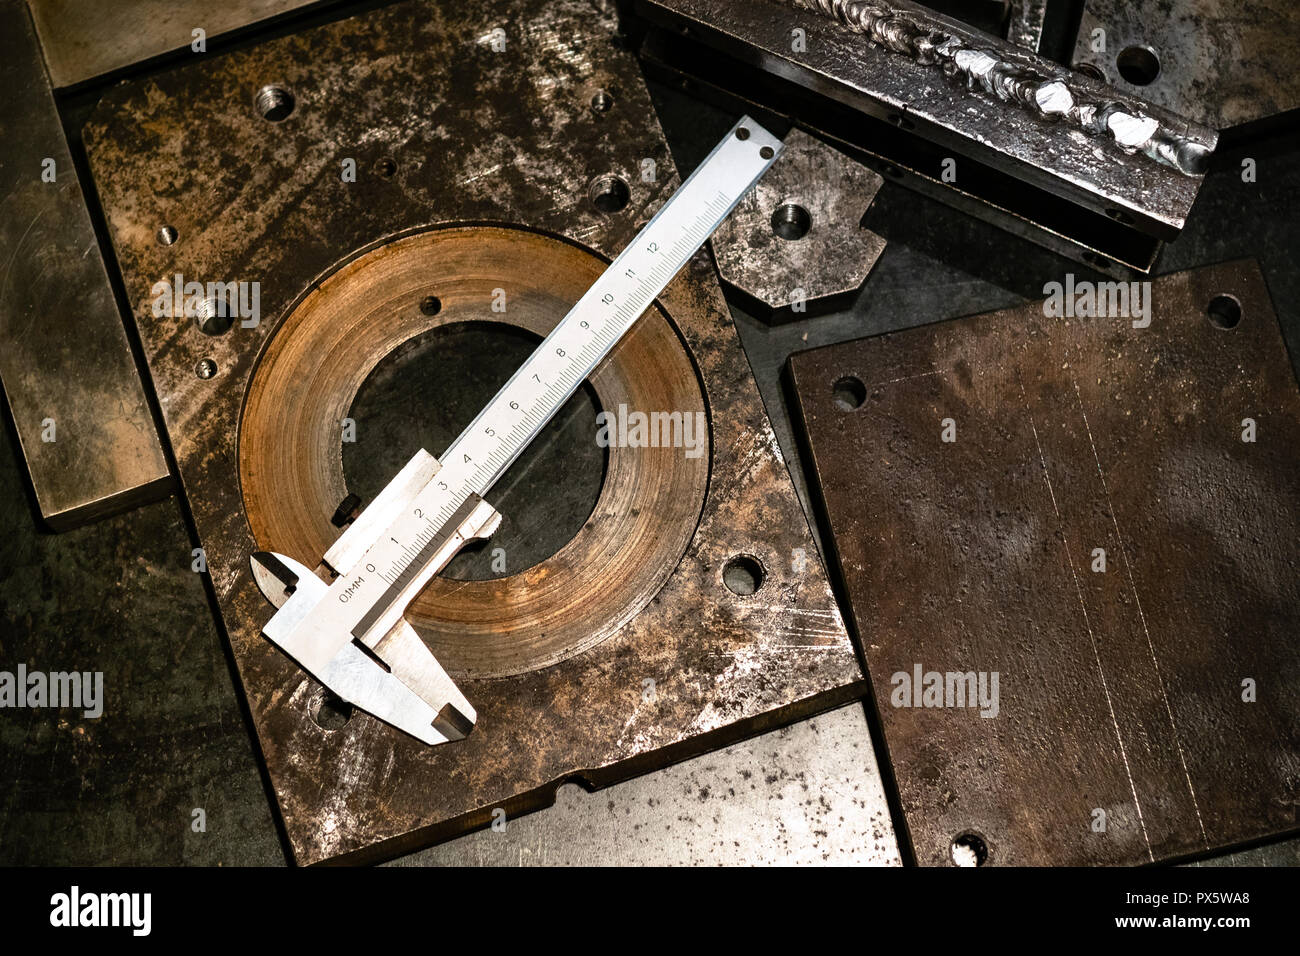 Metalworking still life - top view of callipers on metal workbench in turnery workshop in warm yellow light - Stock Image